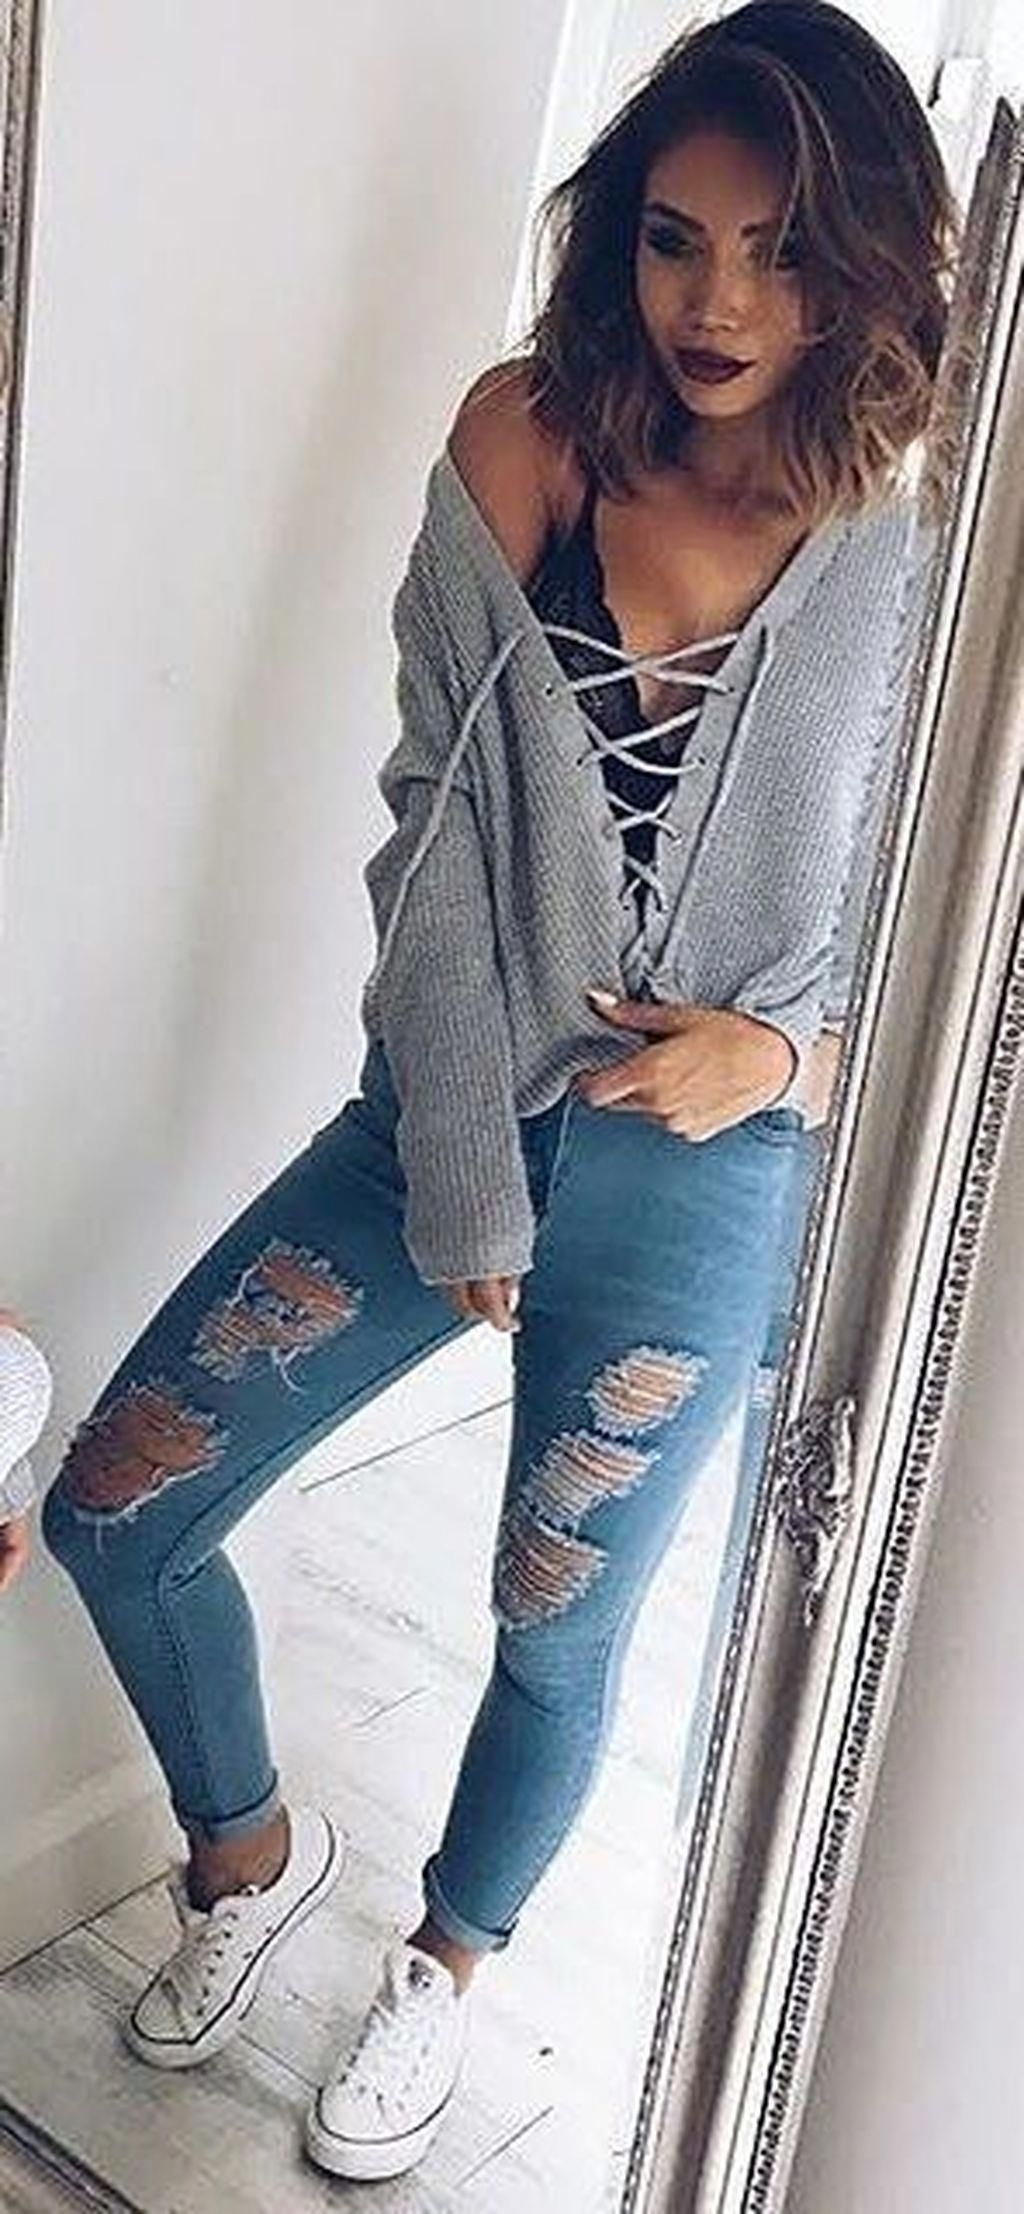 61 Astonishing Ripped Jeans Outfit Ideas | White converse